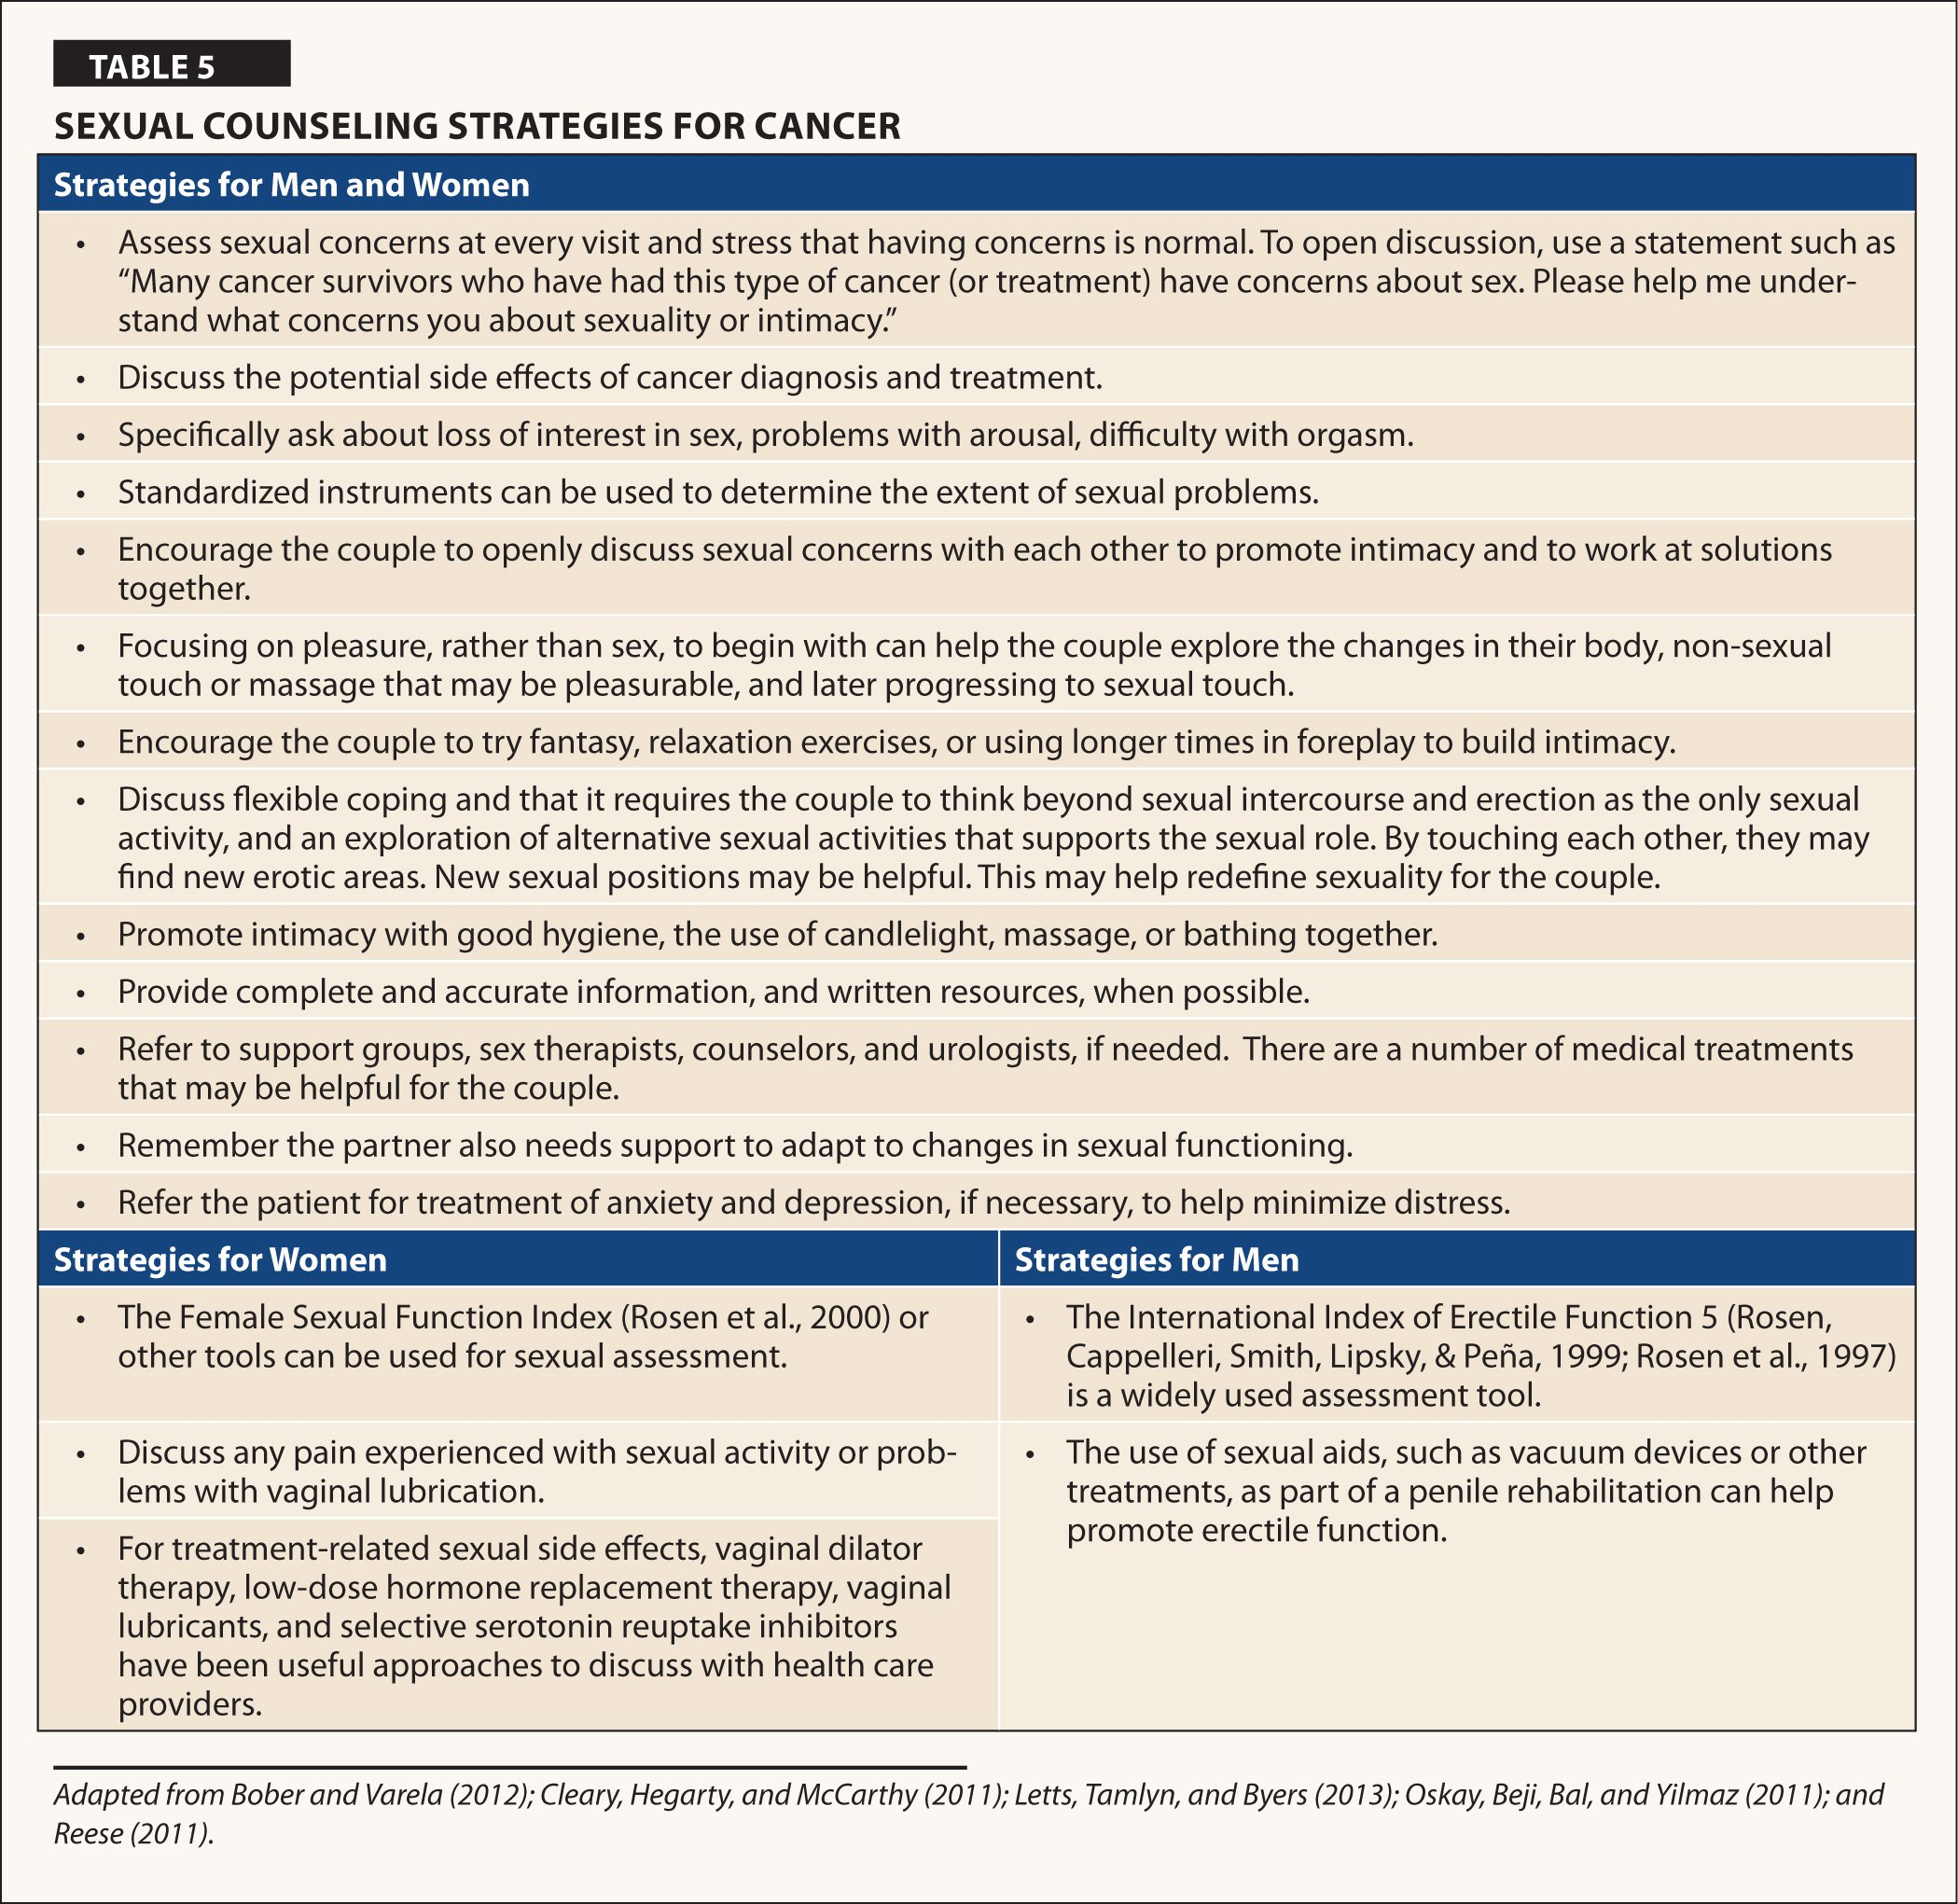 Sexual Counseling Strategies for Cancer